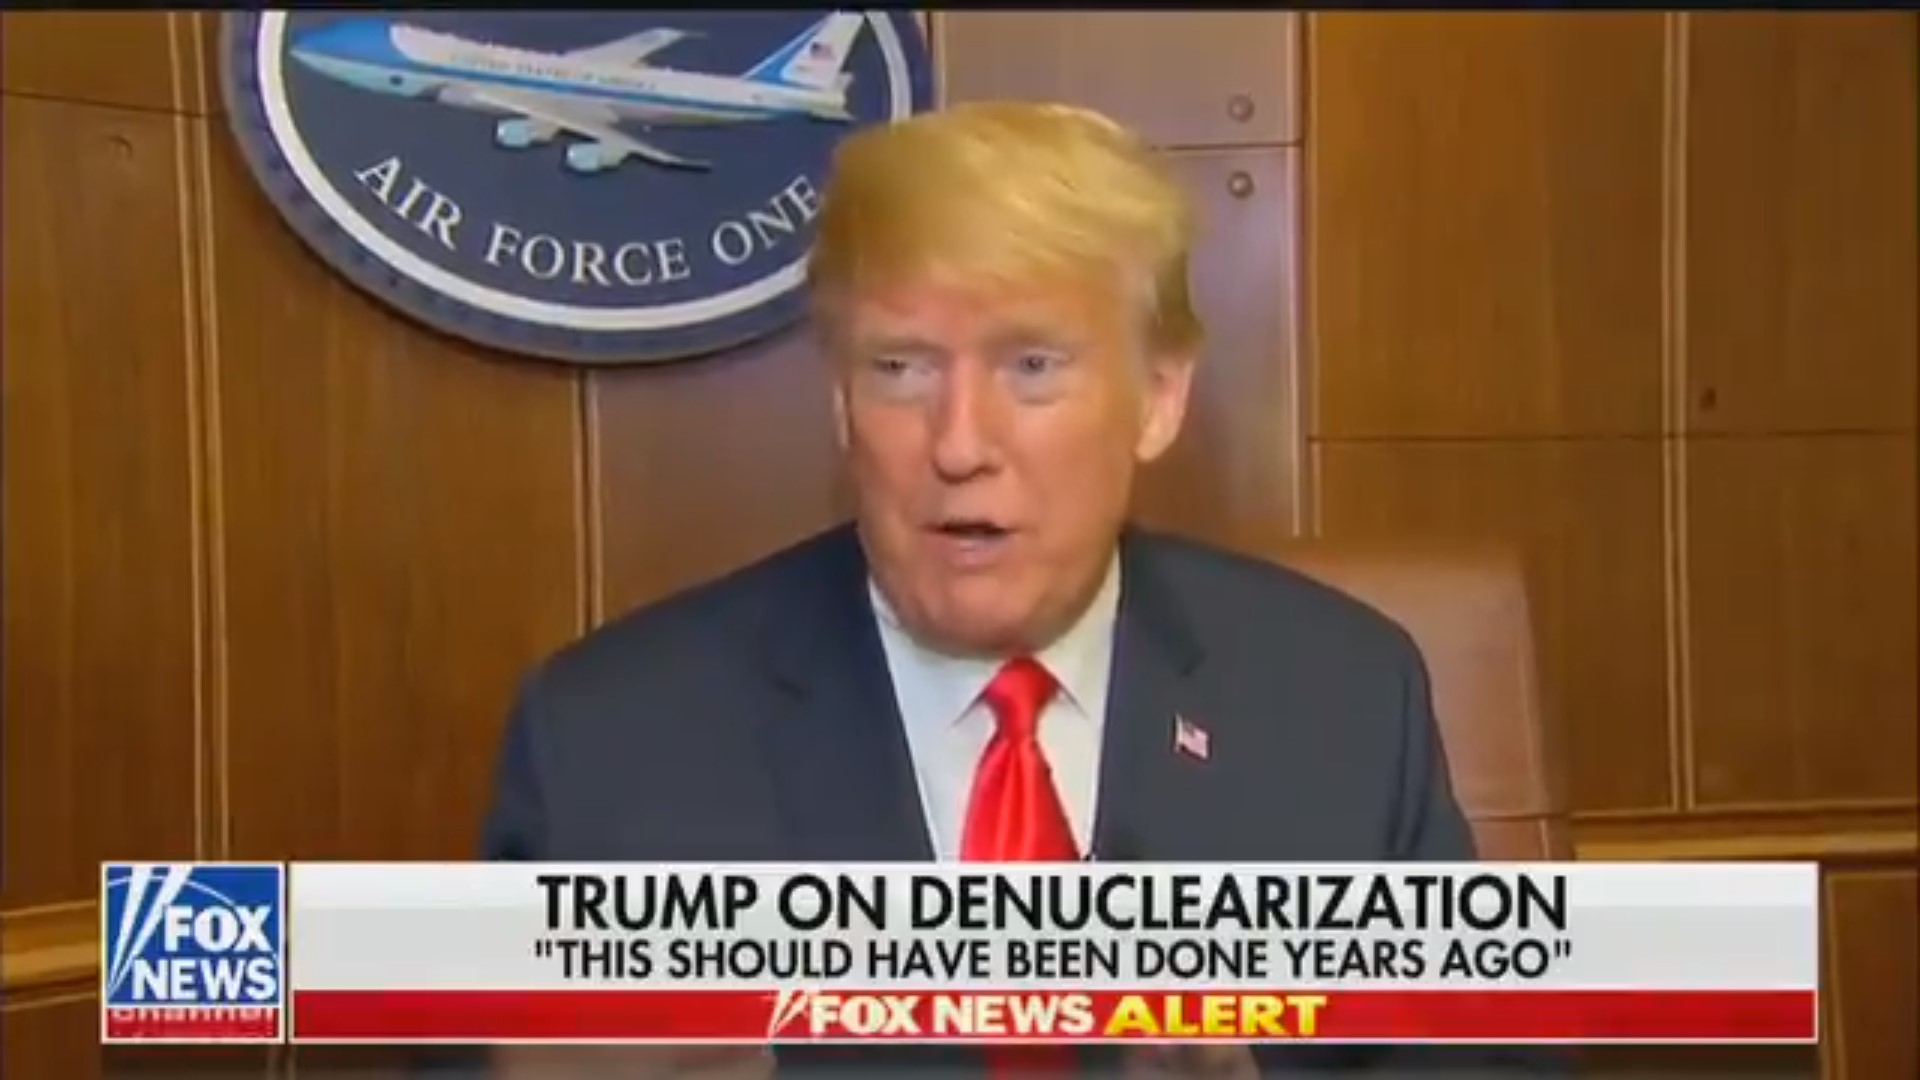 Watch Trump Go Full Whataboutism To Defend Kim Jong Un's Brutality: Others Have Done 'Really Bad Things'